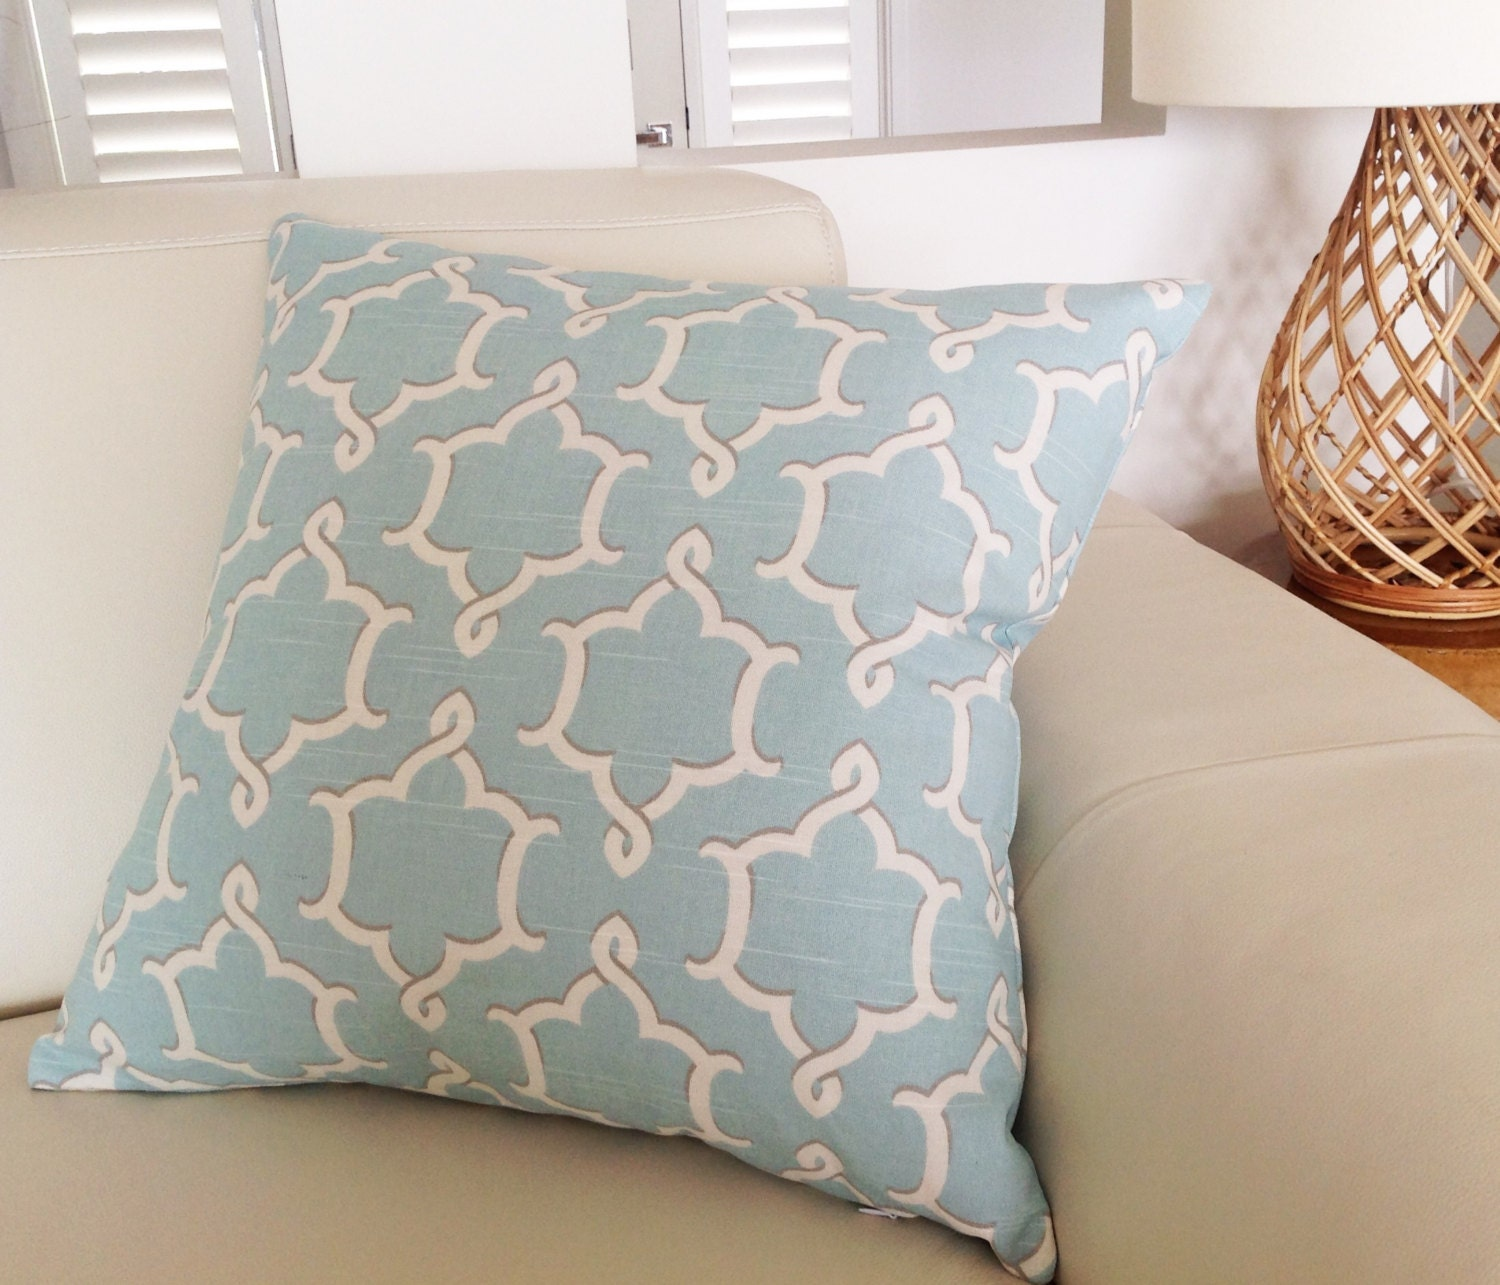 gallery imports pillow aqua pier blue mermaid one pillows sequined teal colored gold and red cushion blanket throw